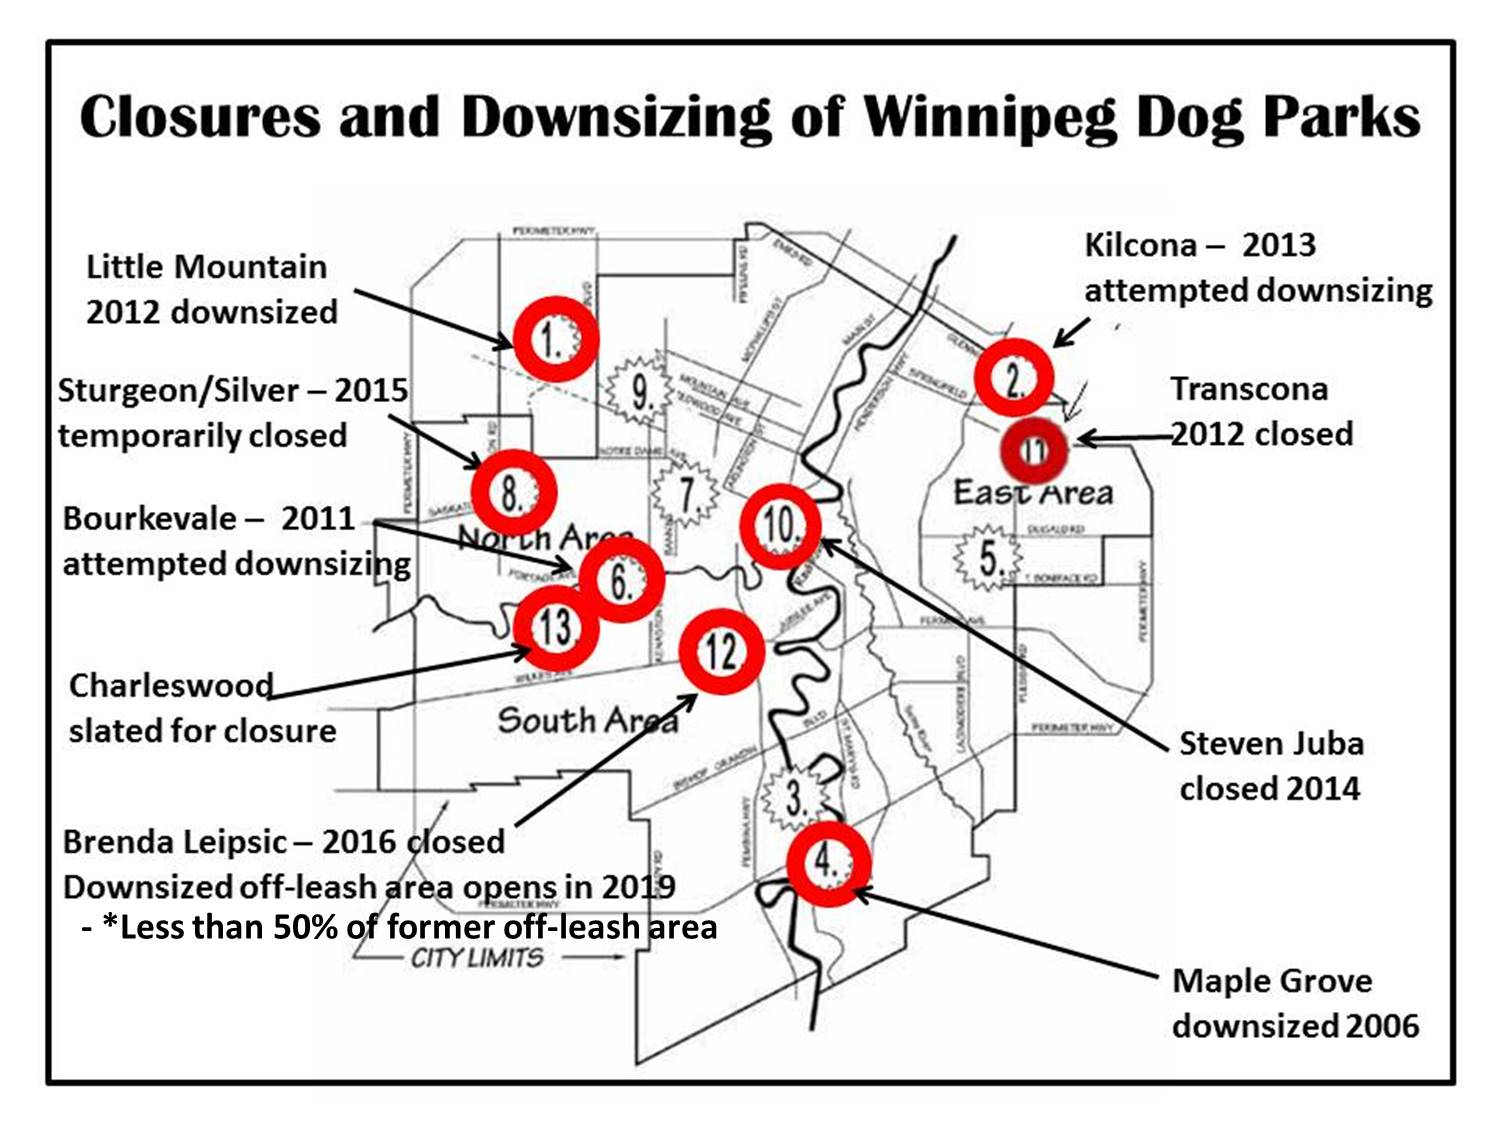 Winnipeg  Dog Parks Closed and Downsized - April 2016